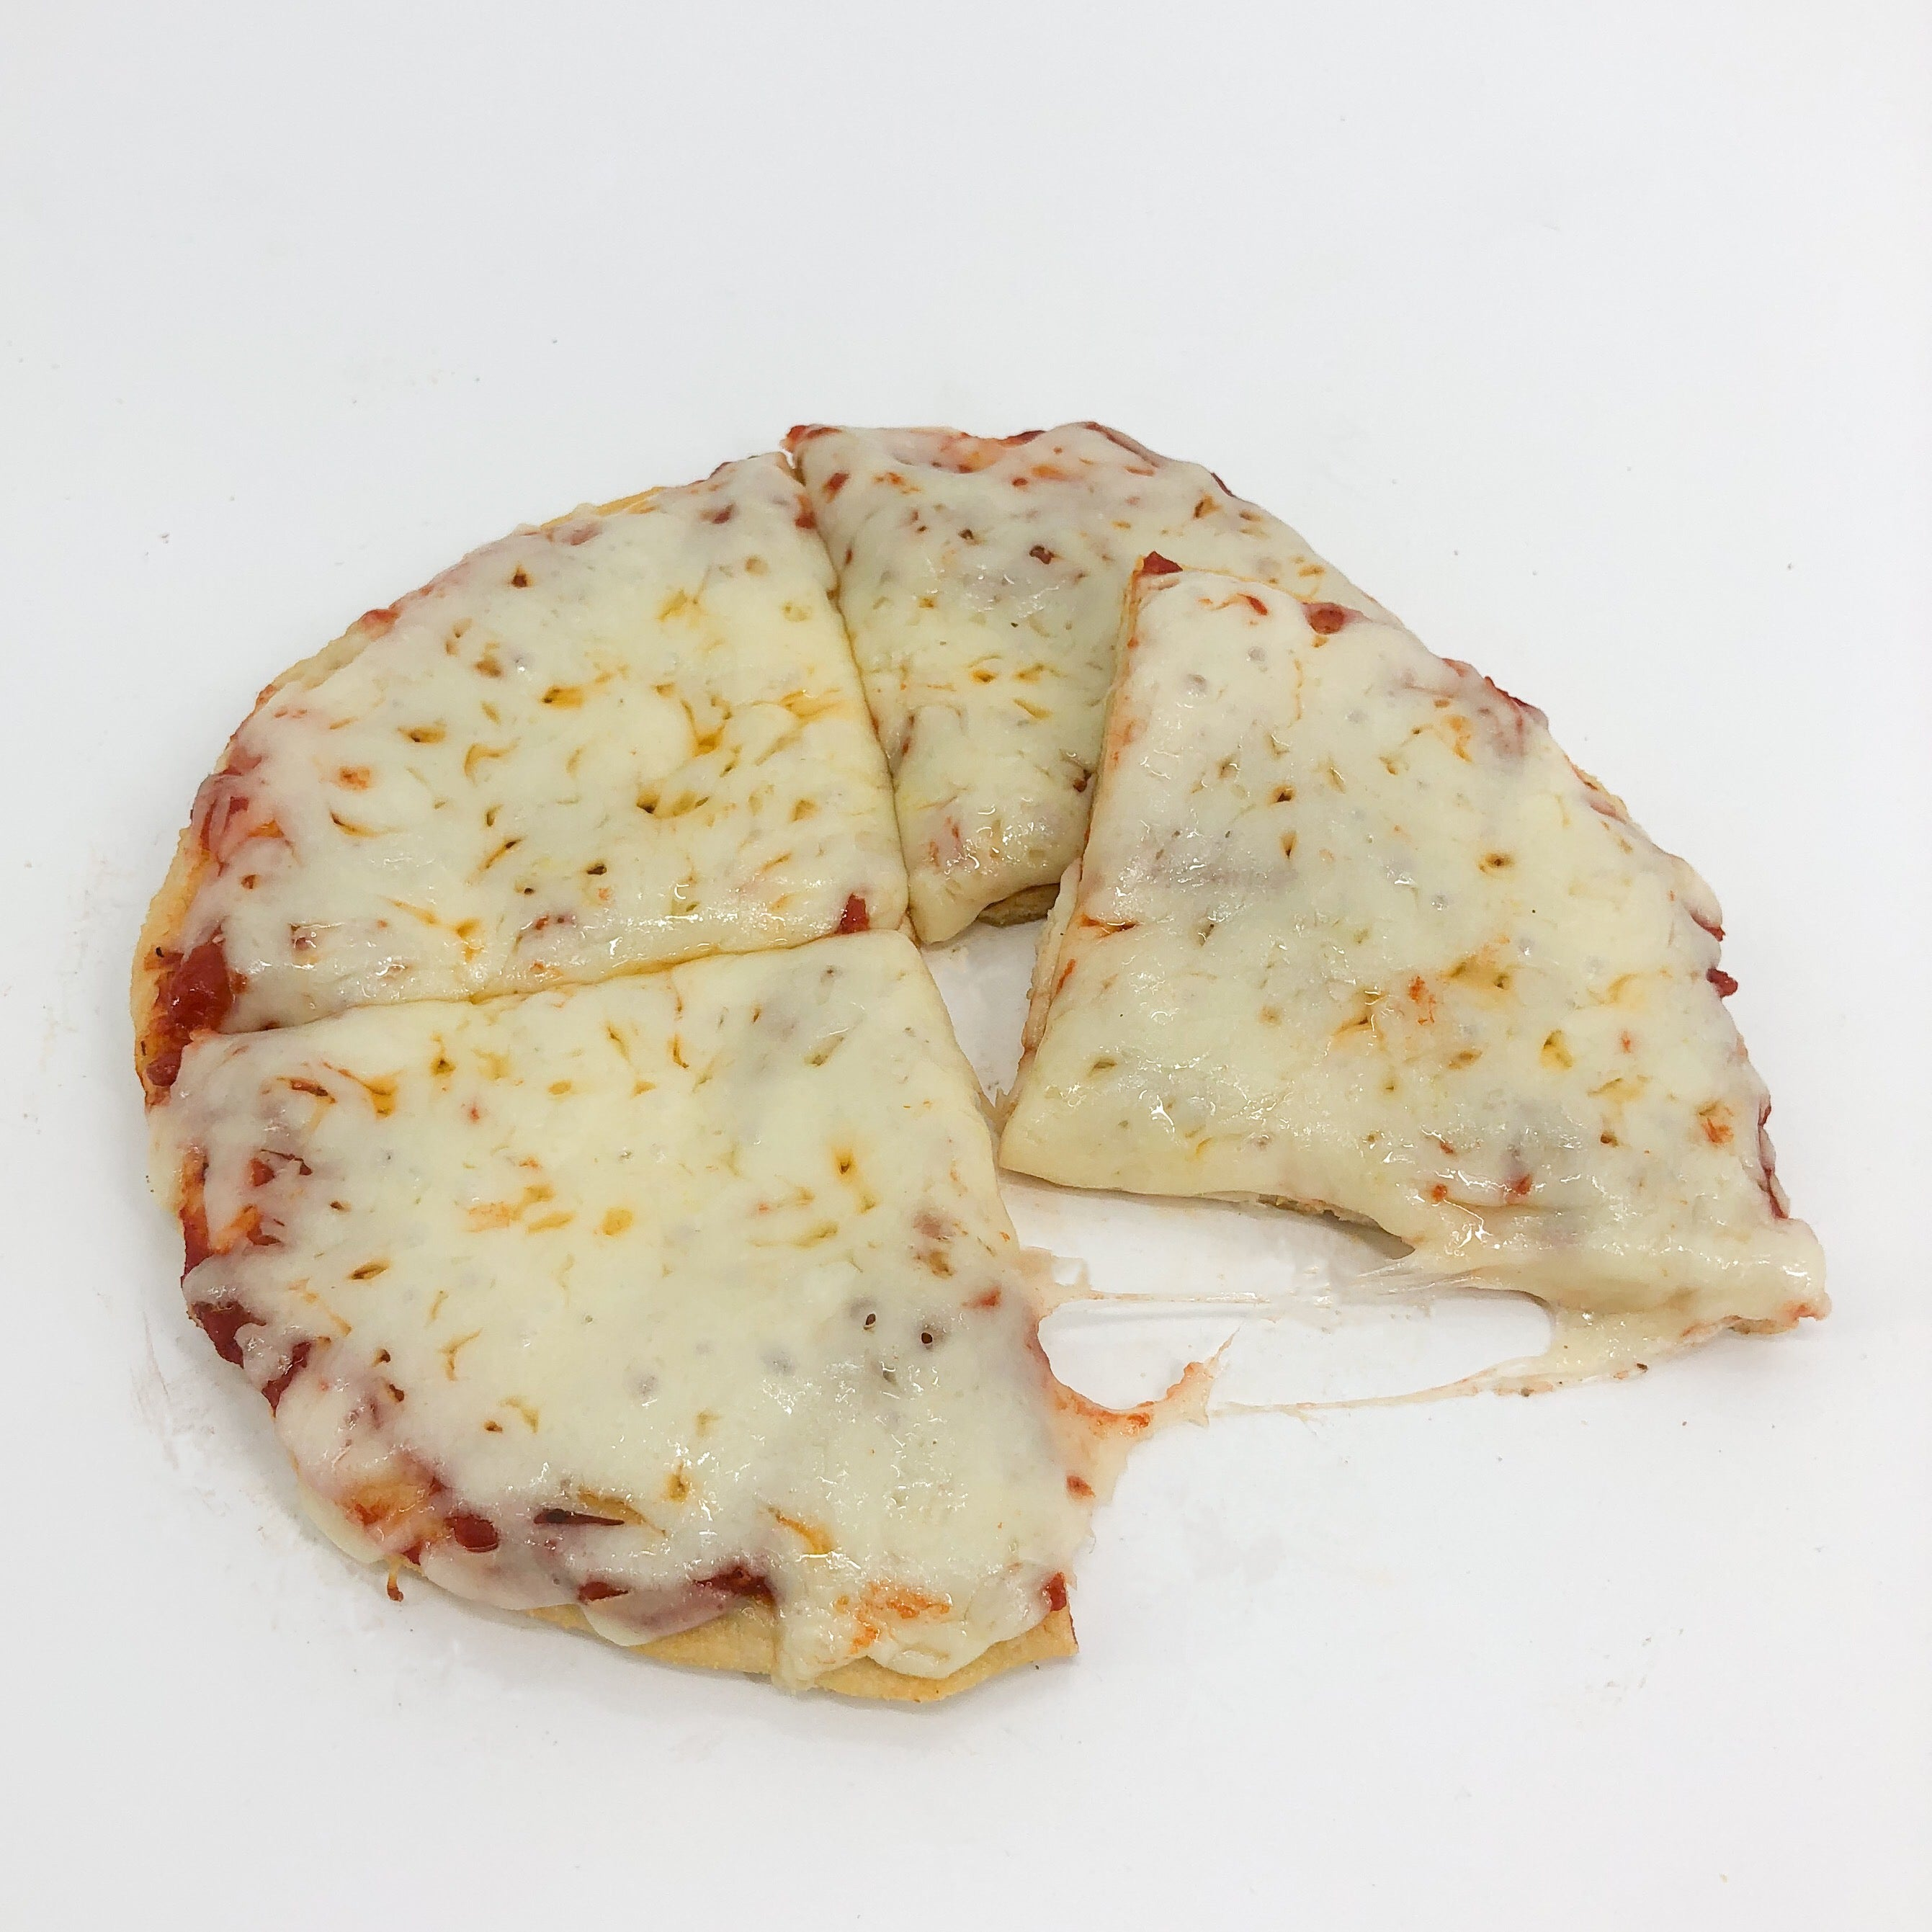 Gluten Free Take and Bake Pizza